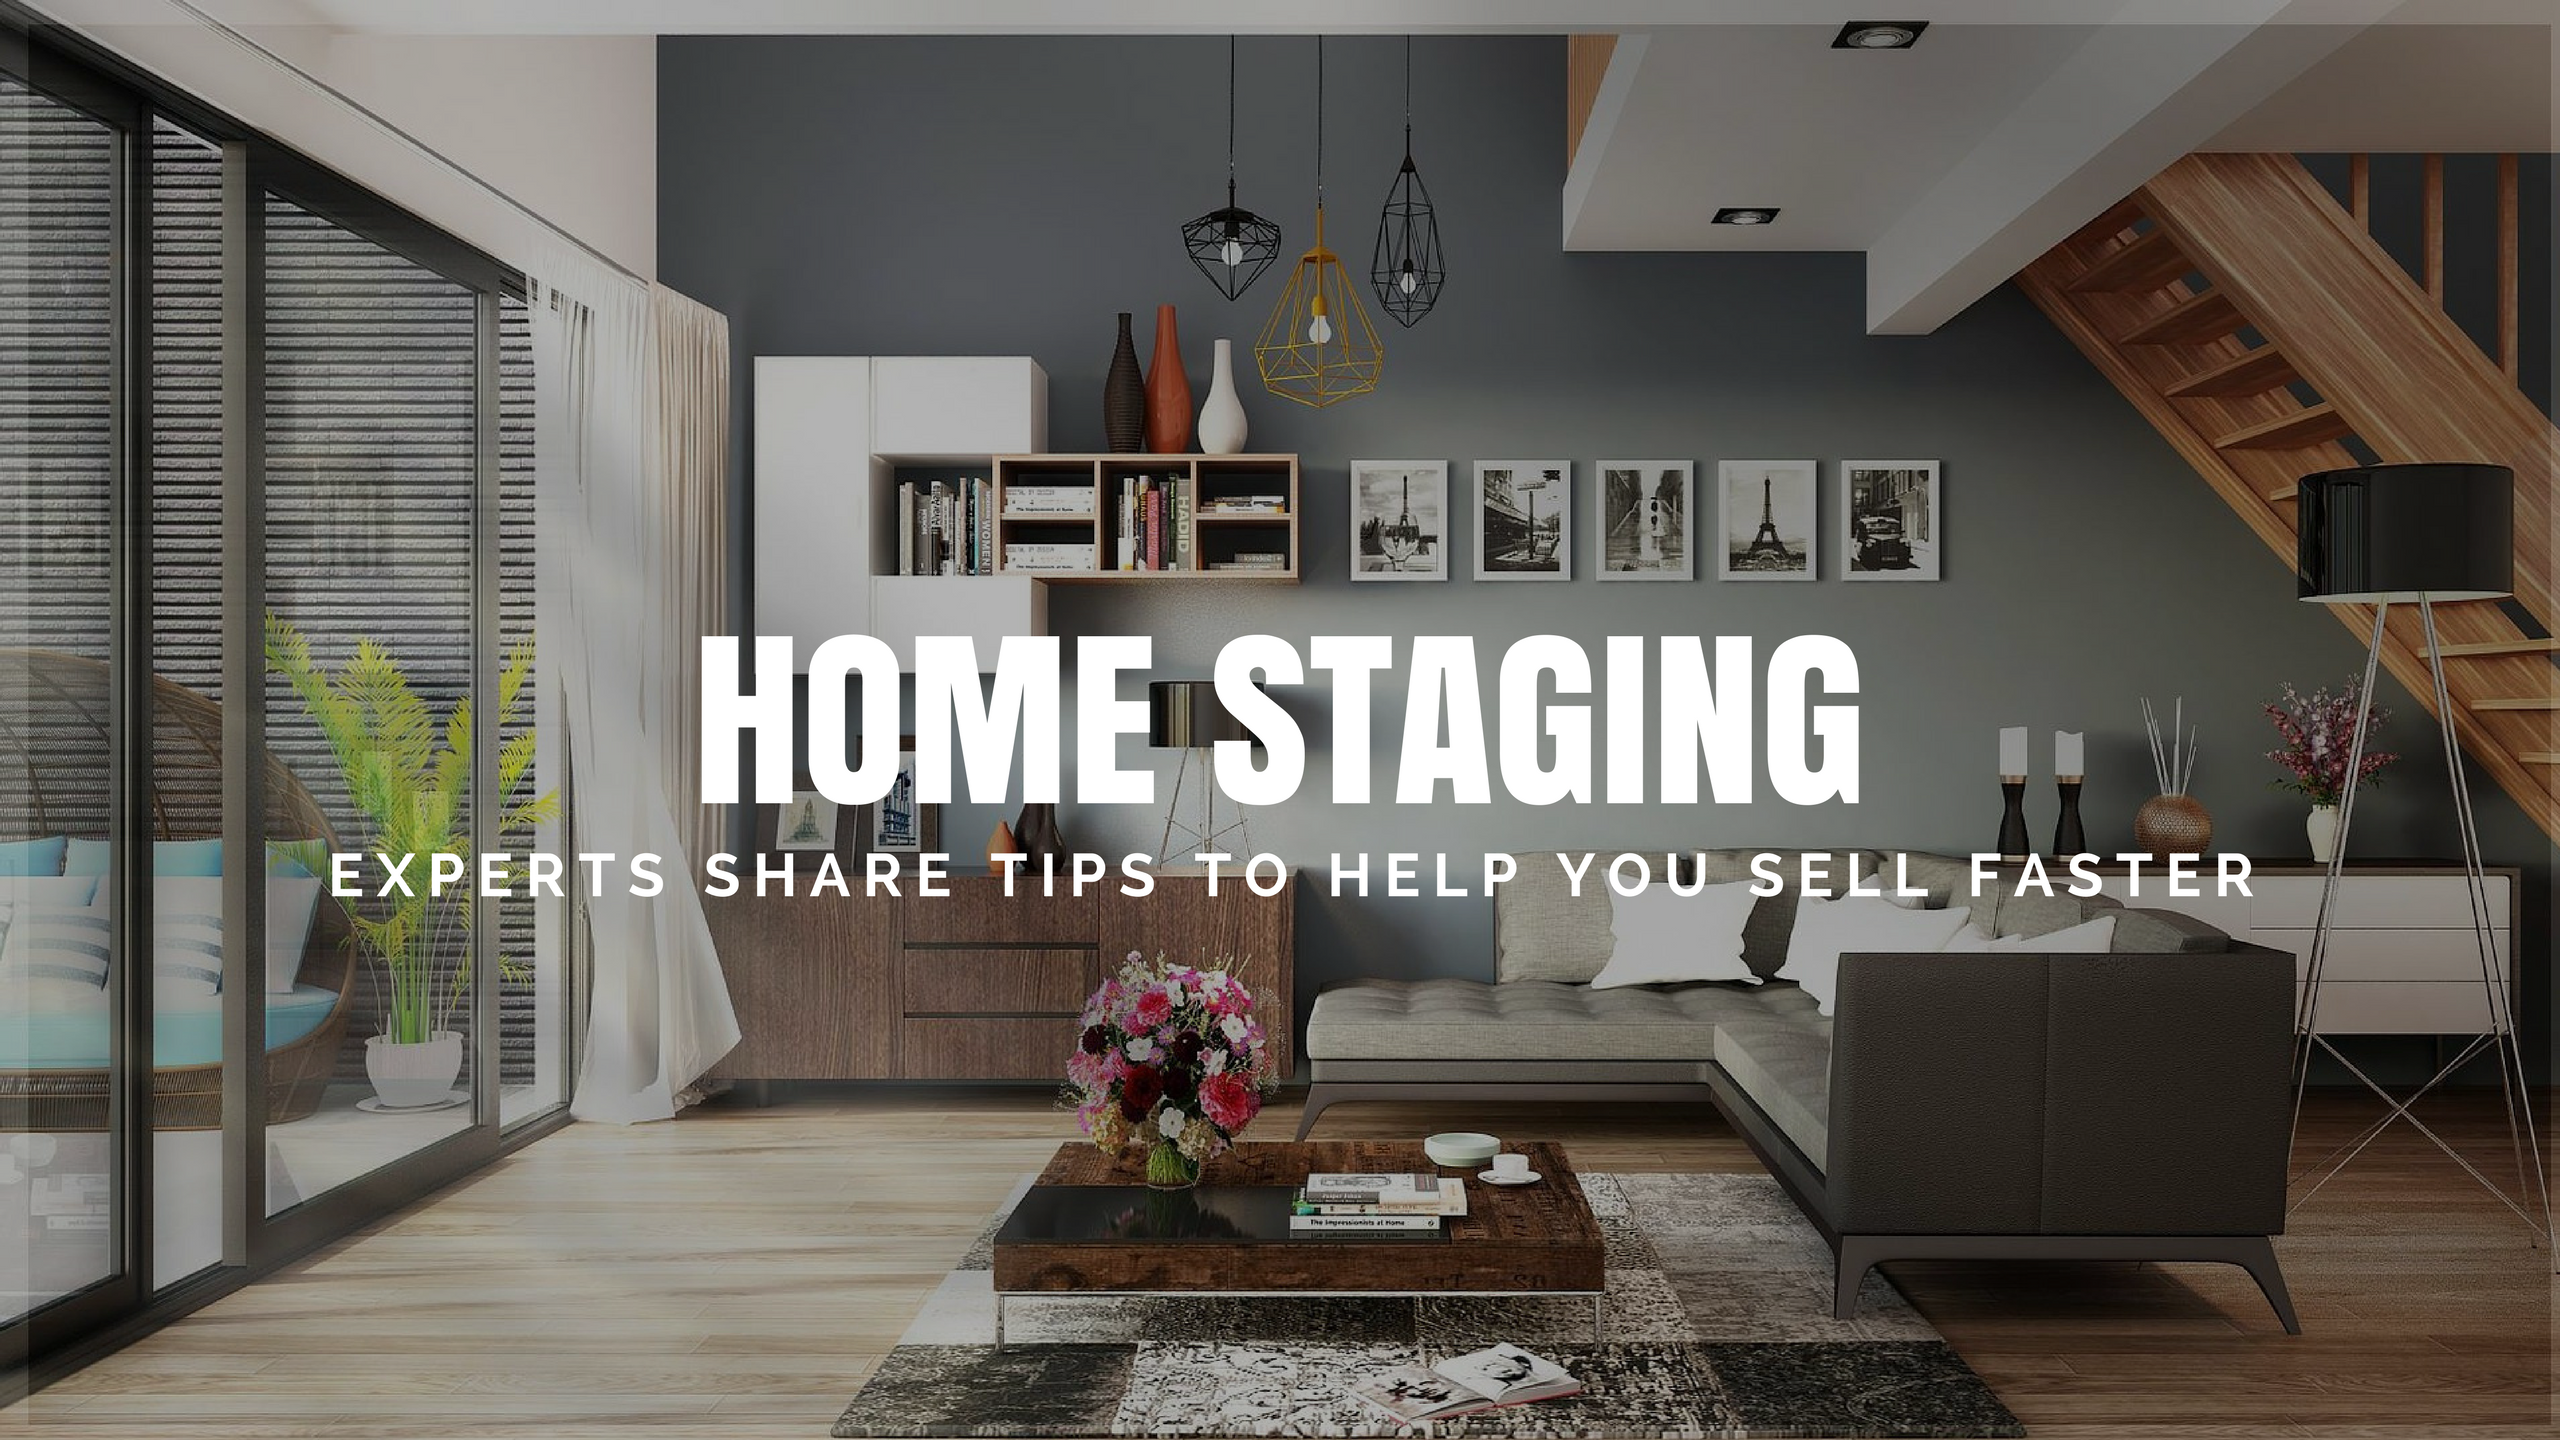 Home Staging Tips - Industry Experts Share Staging Advice